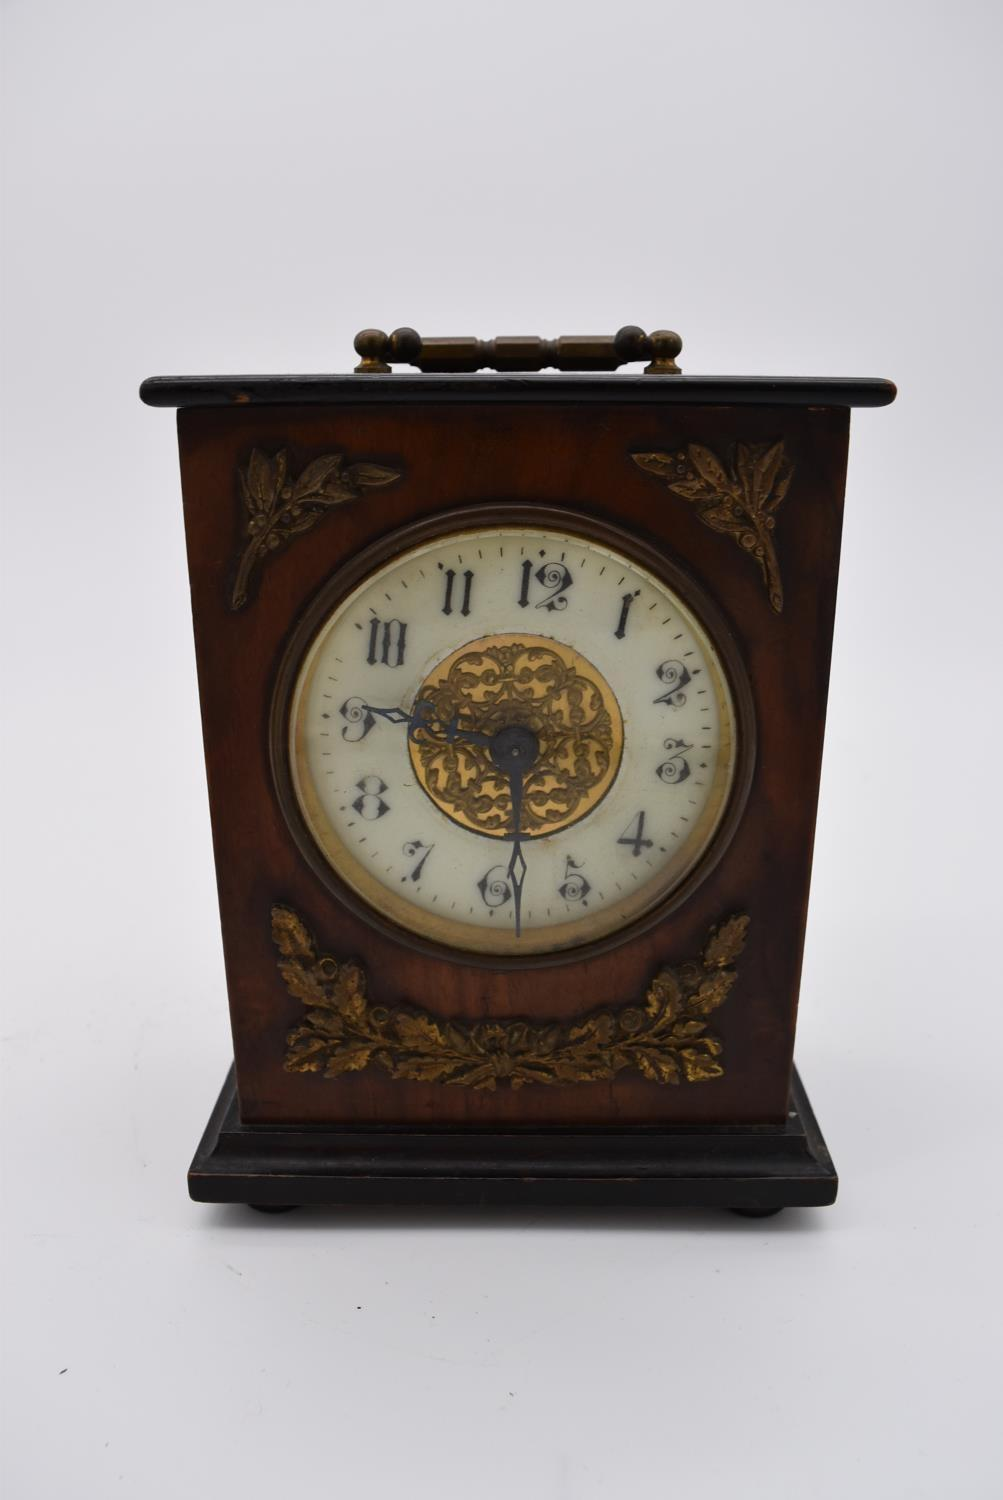 A brass cased carriage clock with engraved brass front with scrolling design and white enamel dial - Image 6 of 8